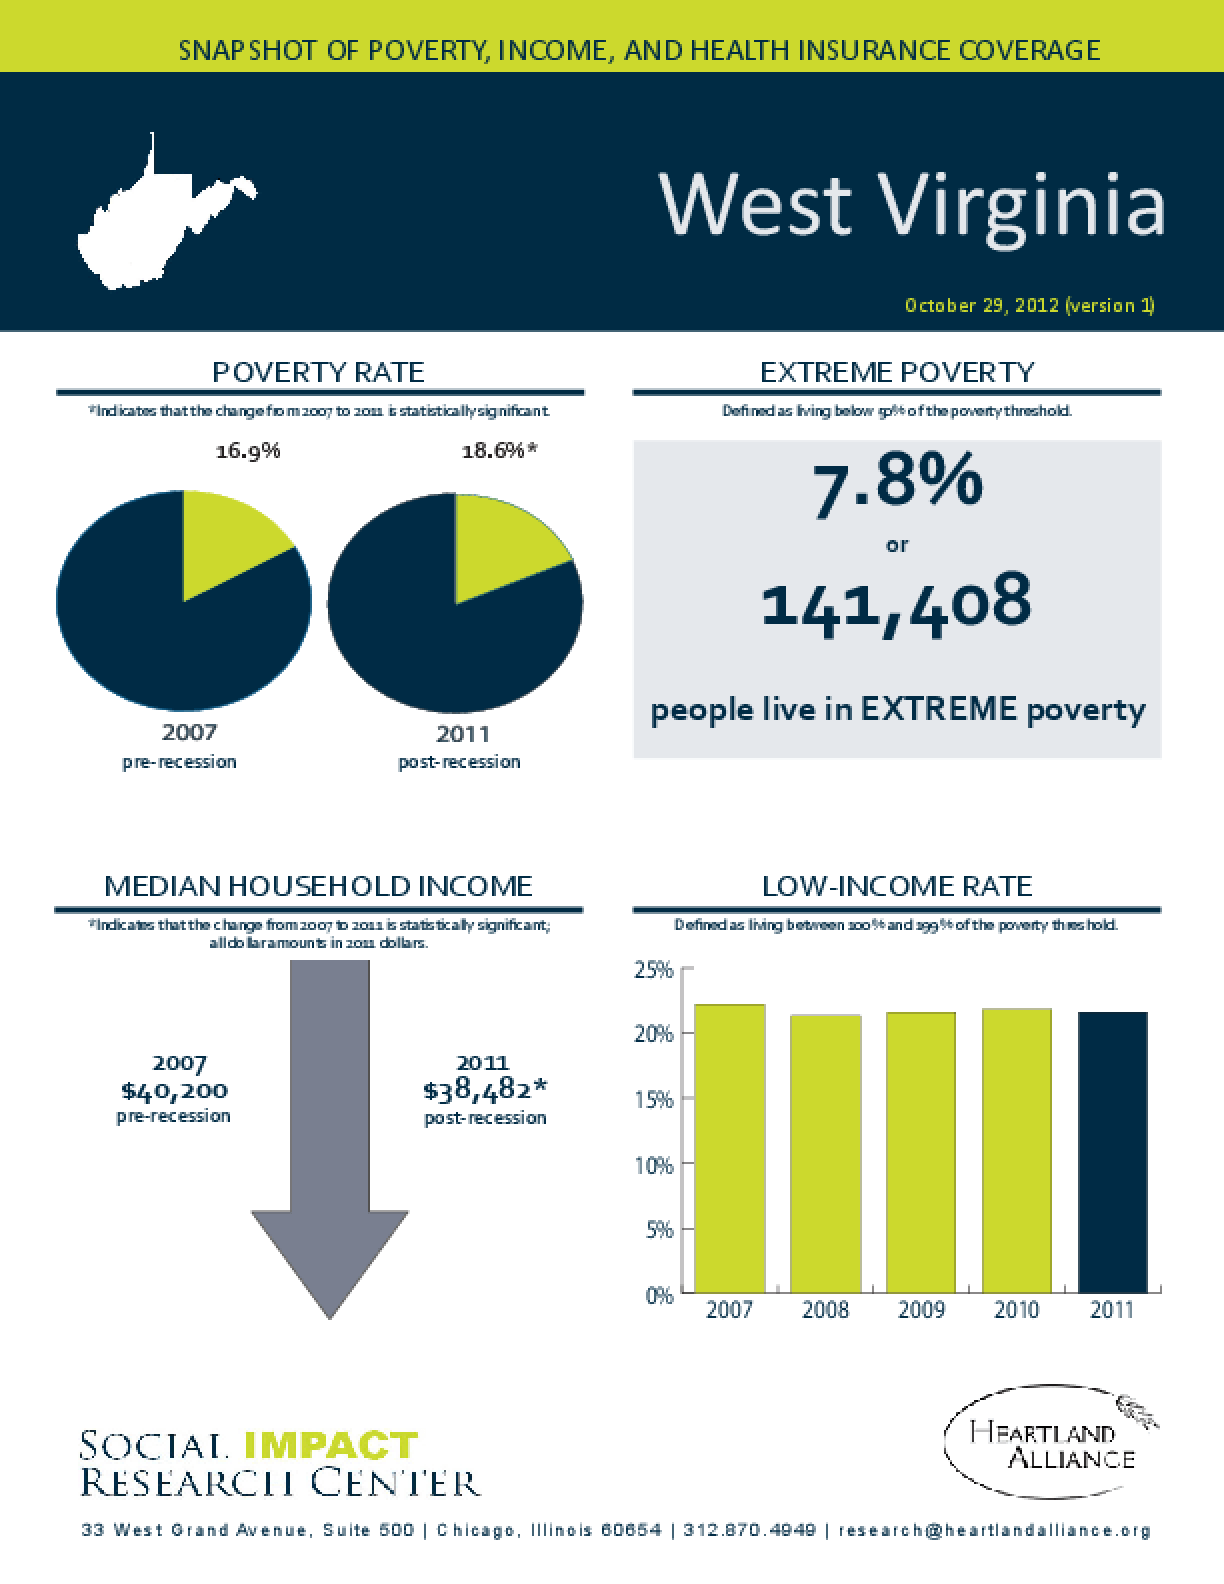 West Virginia: Snapshot of Poverty, Income, and Health Insurance Coverage - 2011